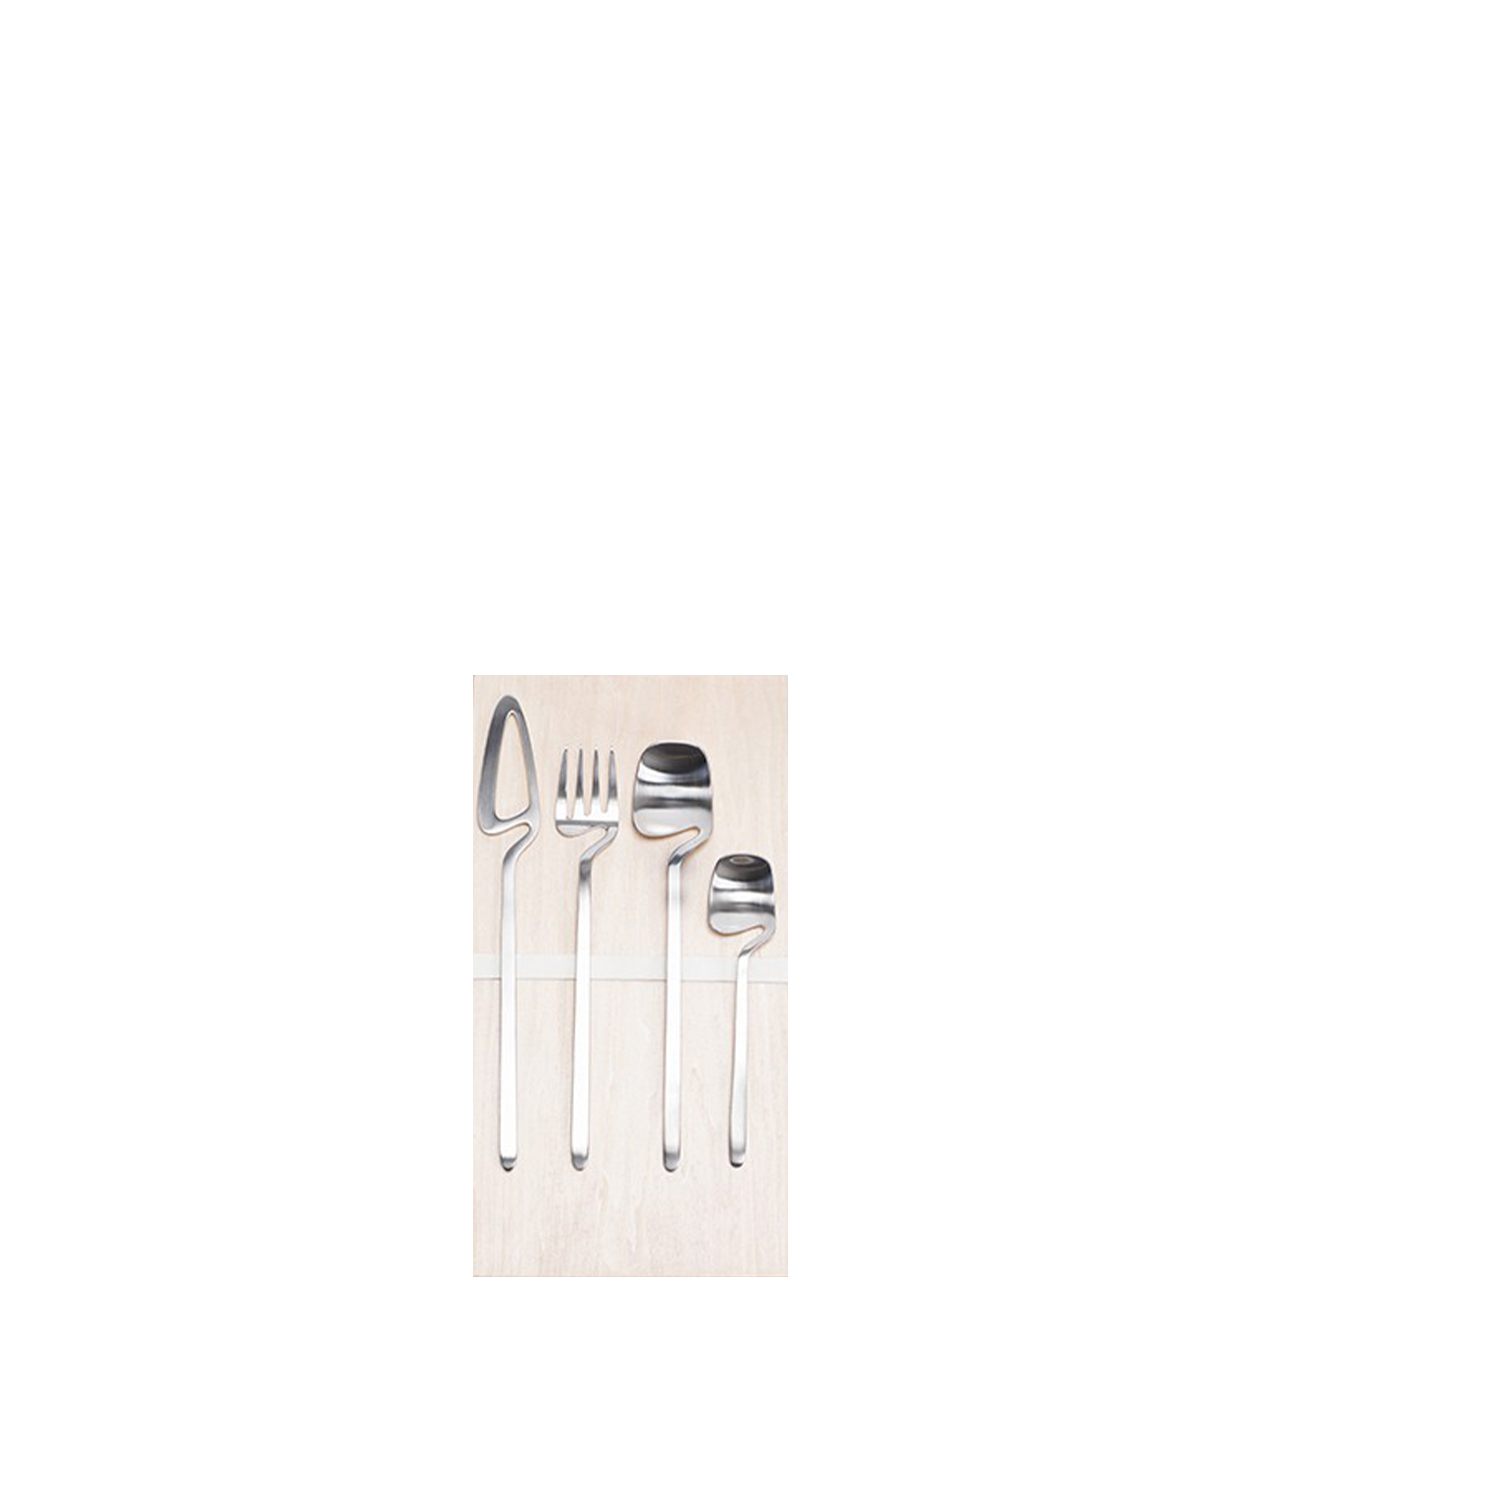 """Nendo Cutlery Giftbox 16 pcs - The cutlery """"skeleton"""" has been reduced to the absolute minimum, limiting the amount of material used whilst still retaining its functionality, left remaining is the outline of the cutlery like the image of a skeleton reflected in an X-ray.  It can be hooked and stored in various places in the kitchen and the teaspoon can be hooked onto the rim of the cup. There are four items, a spoon, fork, knife, and teaspoon, the set also has a dedicated stand and wall hook to display the set. The cutlery is 18/10 stainless steel, also available with a black PVD coating. Each wooden giftbox is complemented by 4 soft cotton bags.  All colours are dishwasher proof and suited for horeca use. 